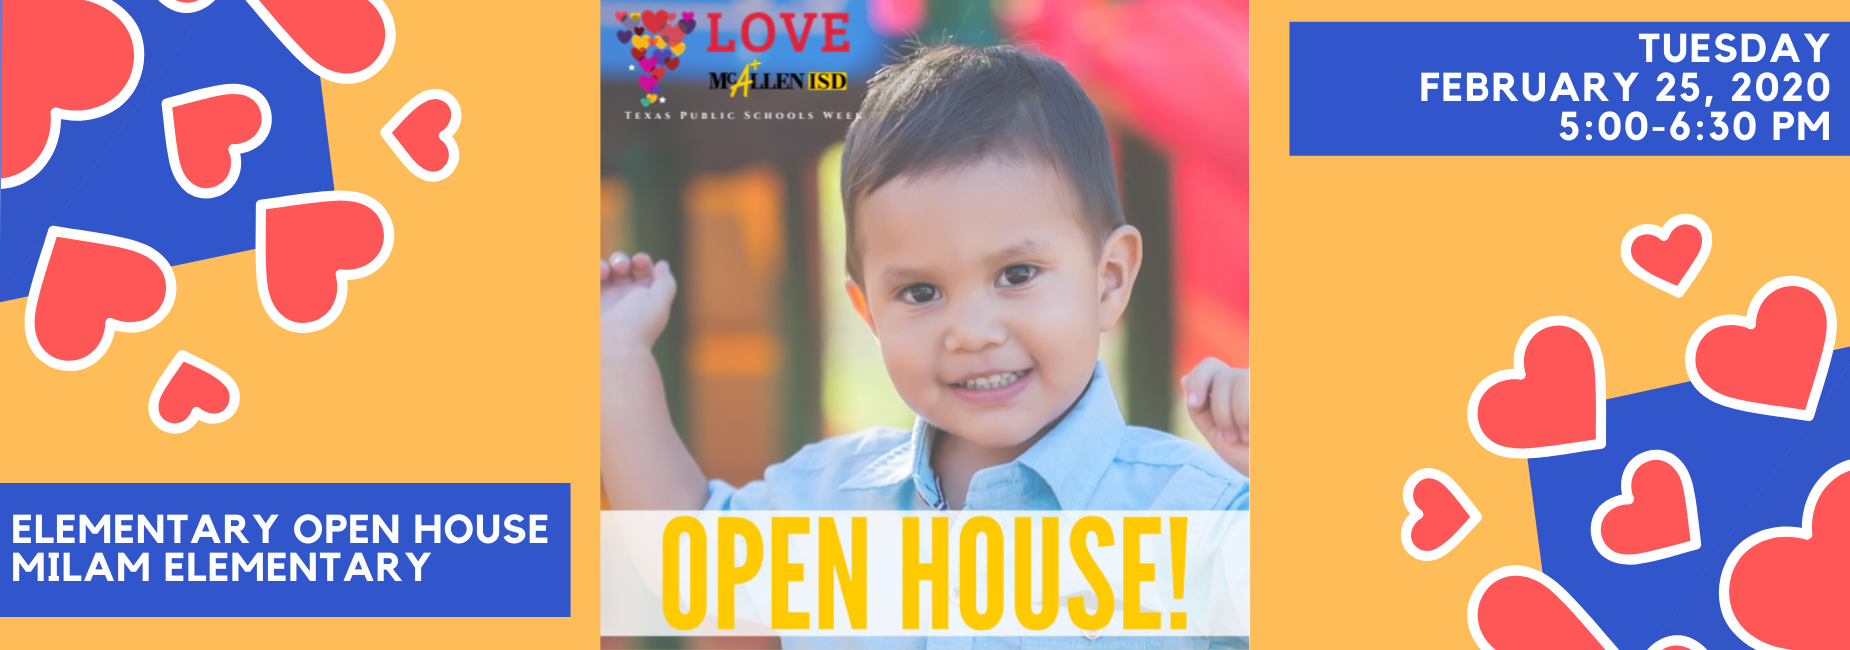 Elementary Open House, Tuesday, February 25, 2020, 5:00-6:30 PM